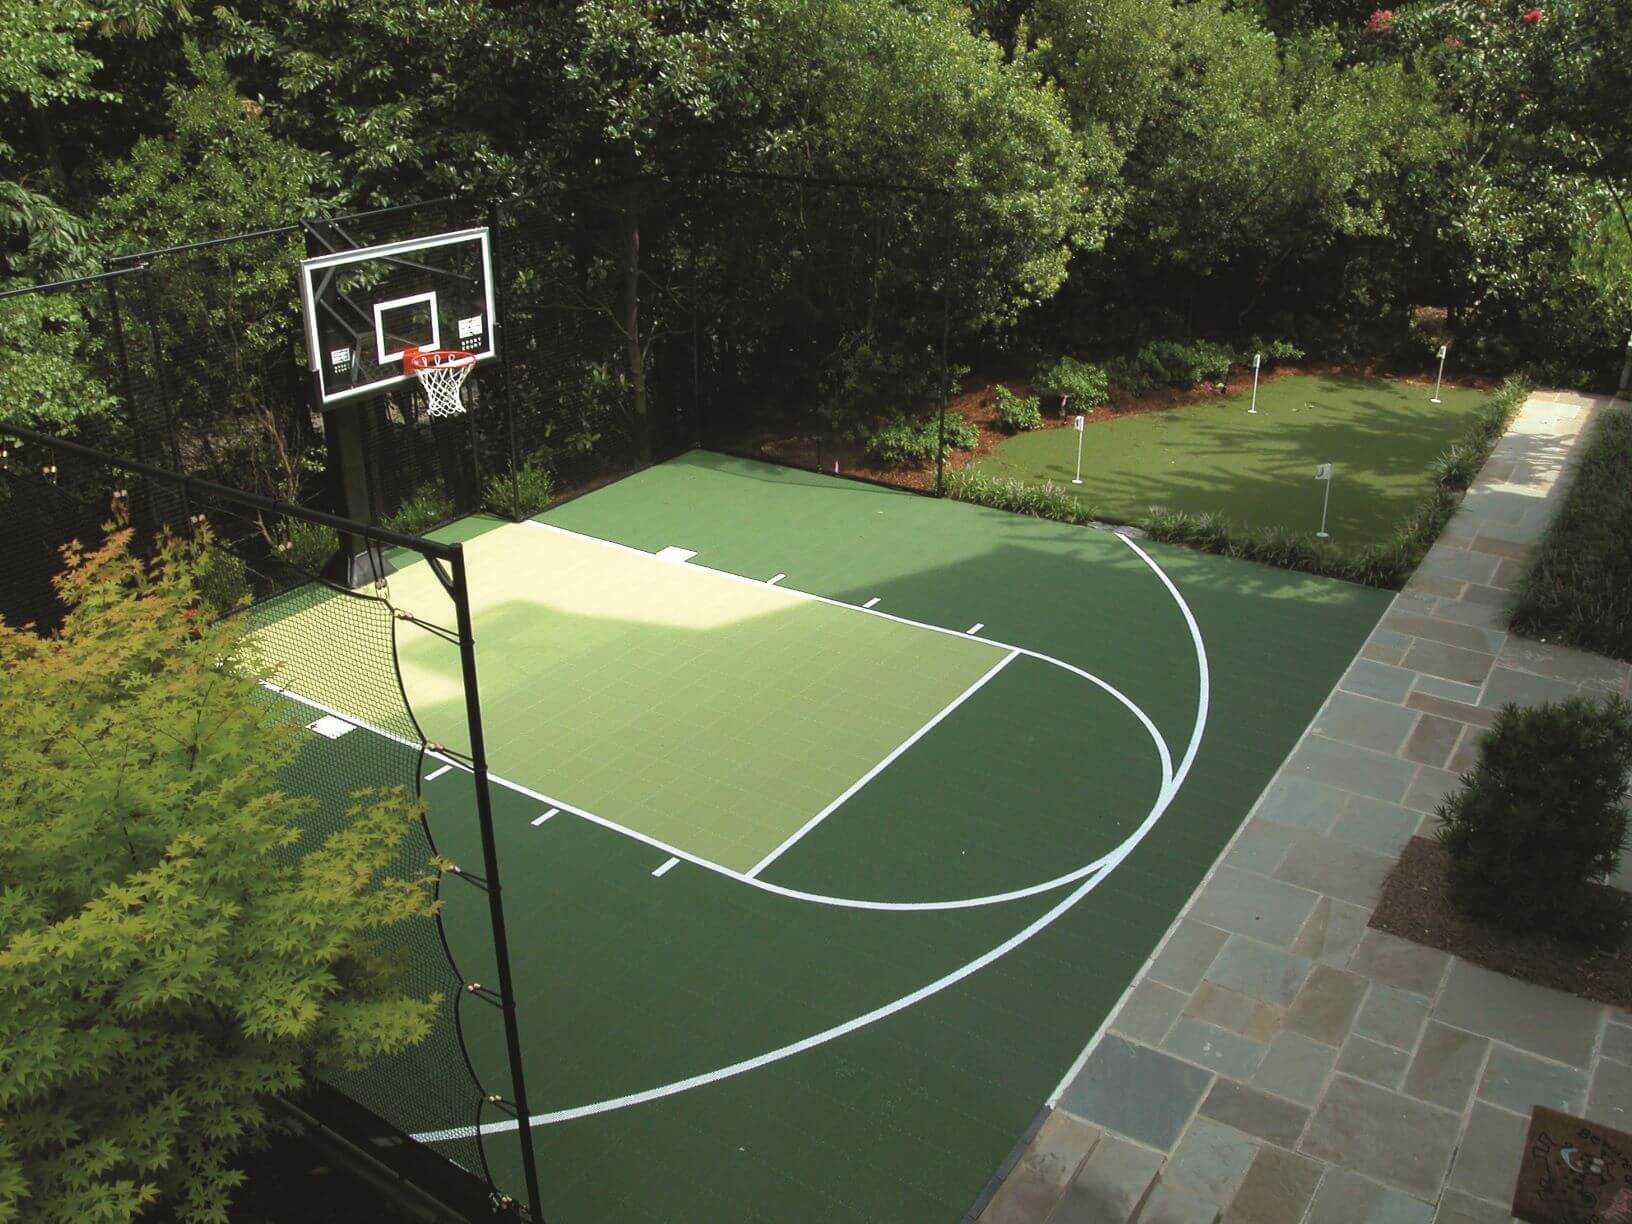 Residential Backyard Sport Court Basketball Sacramento California